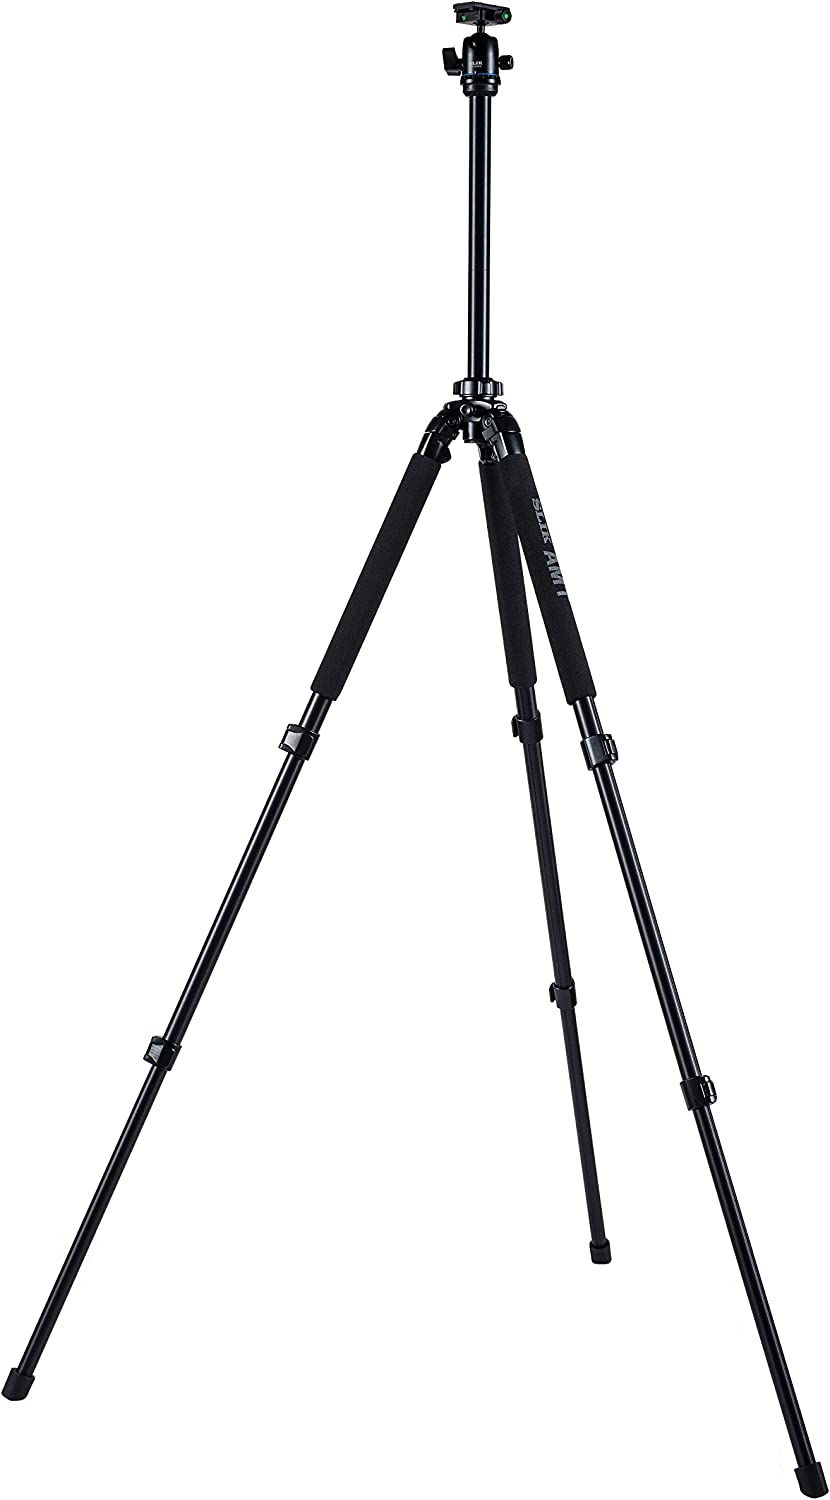 for Mirrorless//DSLR Sony Nikon Canon Fuji Cameras and More Black SLIK PRO 500HD Tripod with 3-Way Panhead//Quick Shoe 615-501